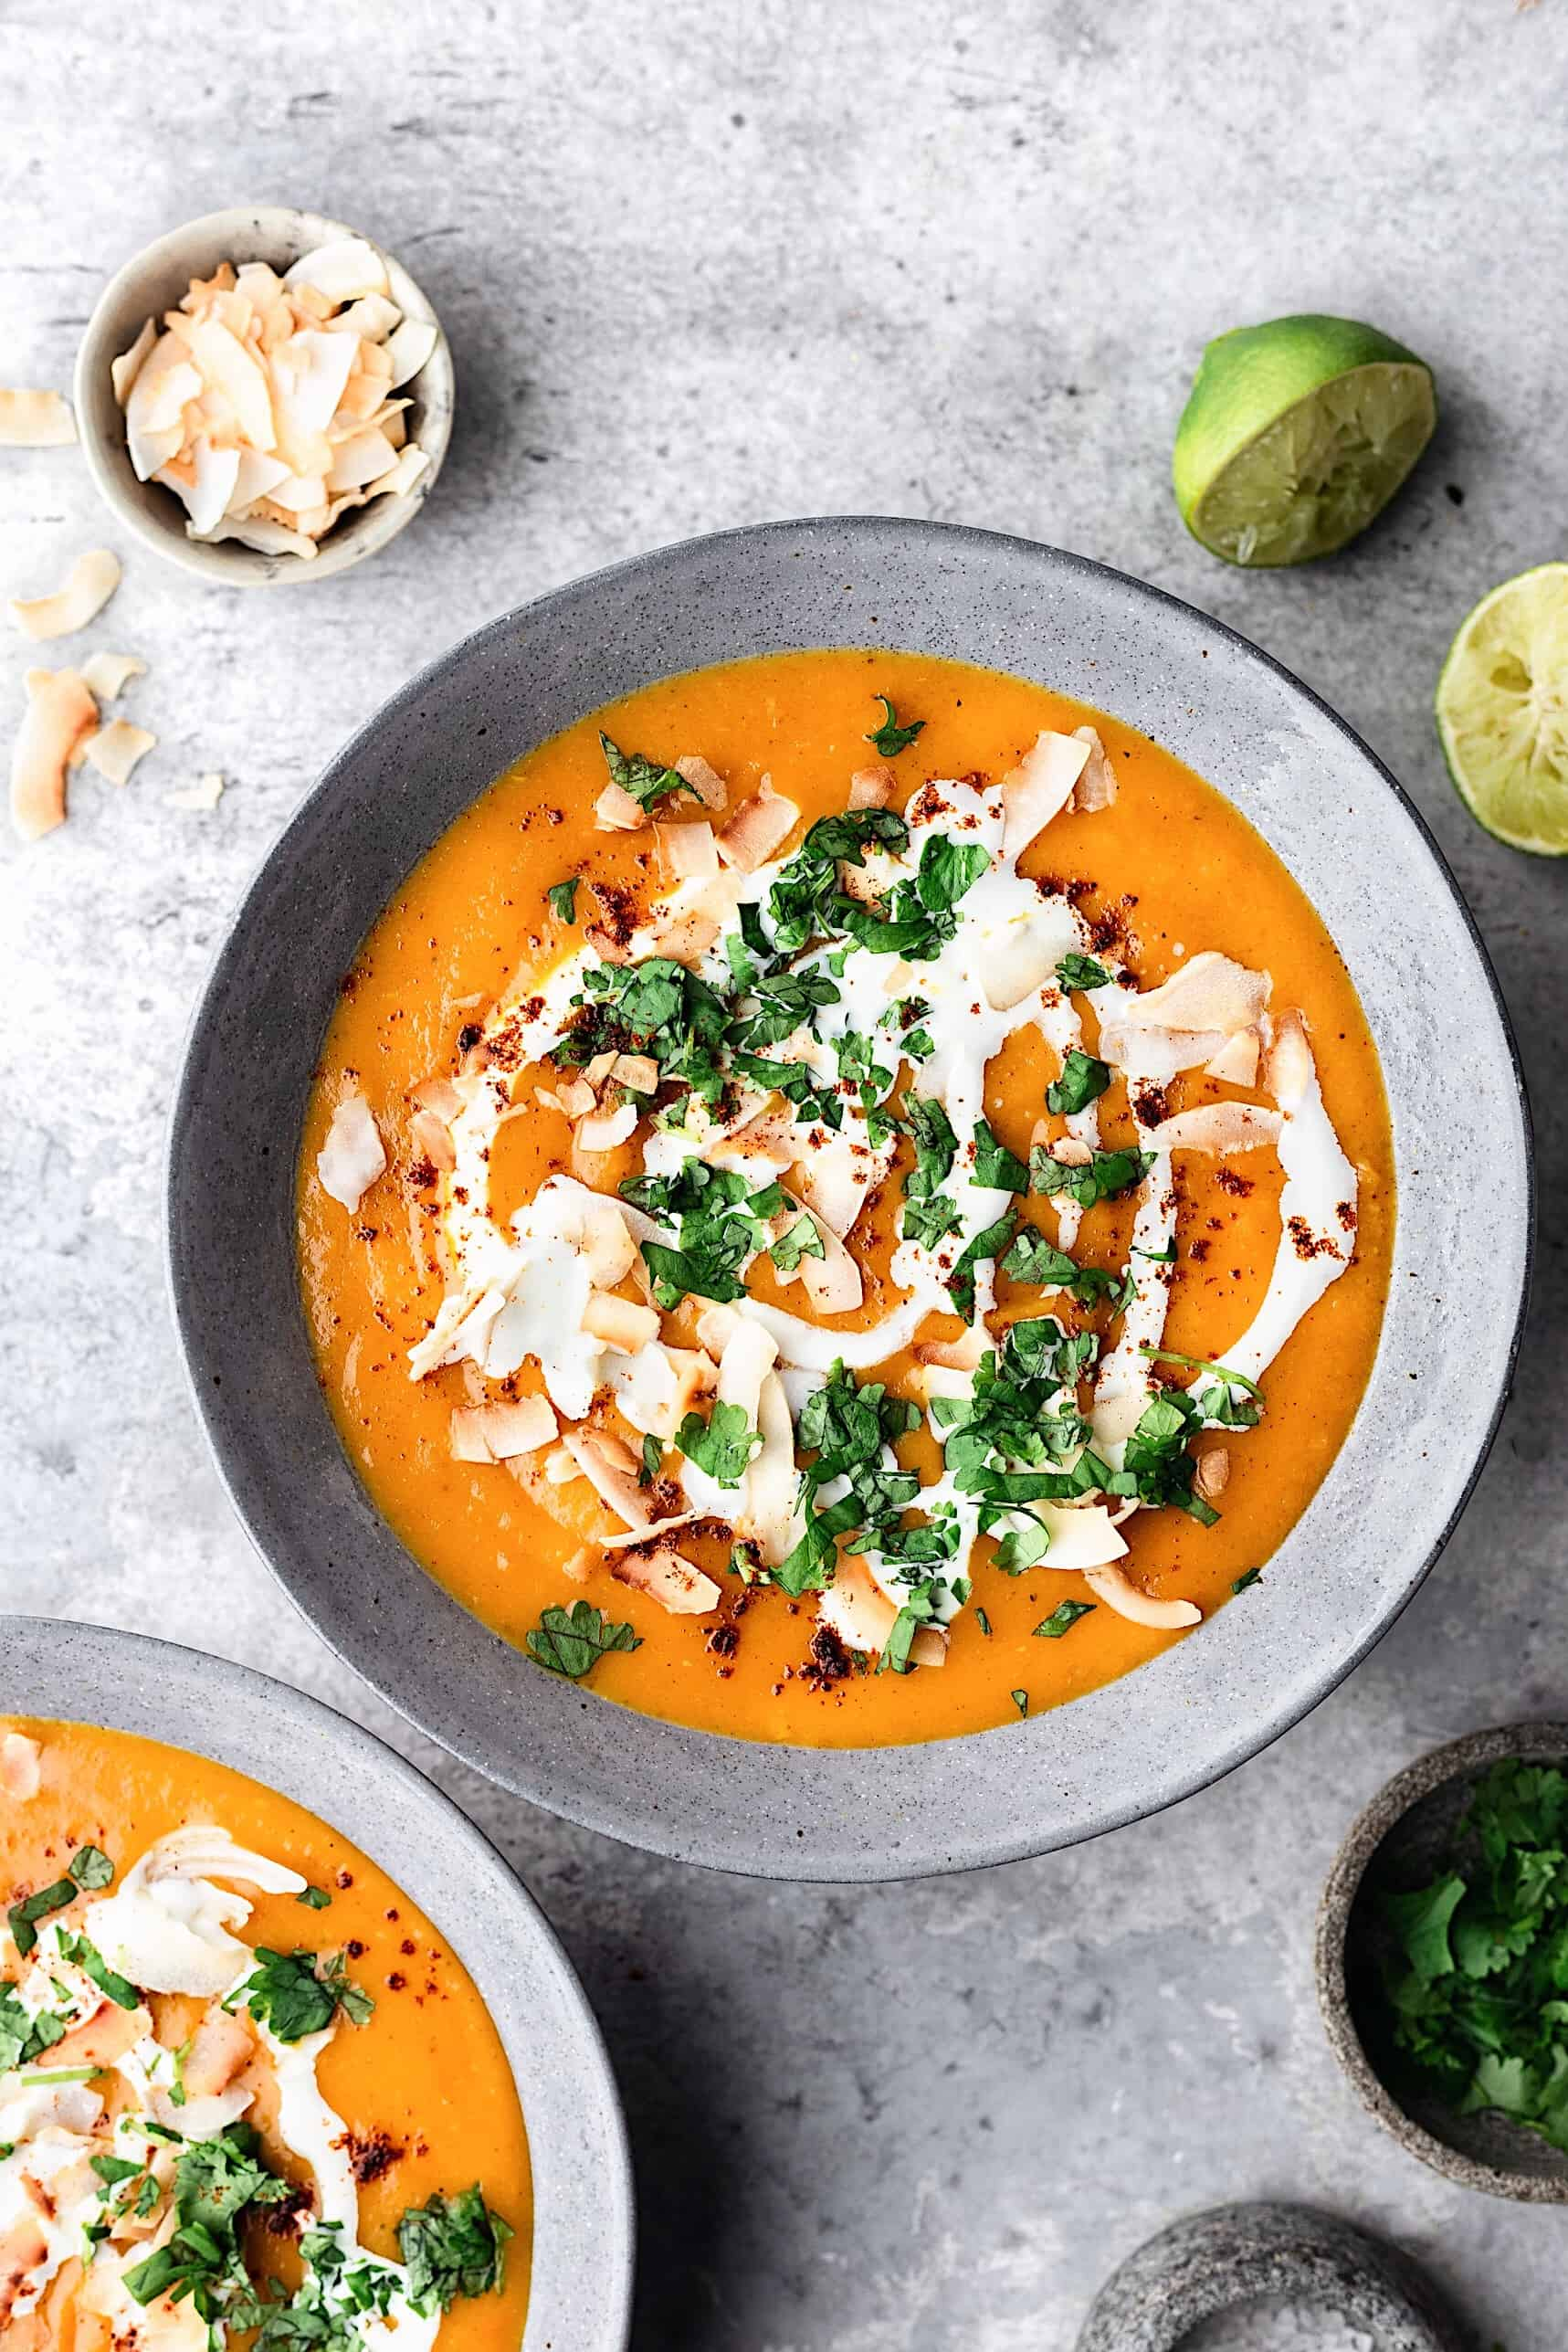 Curried Sweet Potato Coconut Soup #soup #vegan #recipe #sweetpotato #fall #autumn #coconut #curry #spice